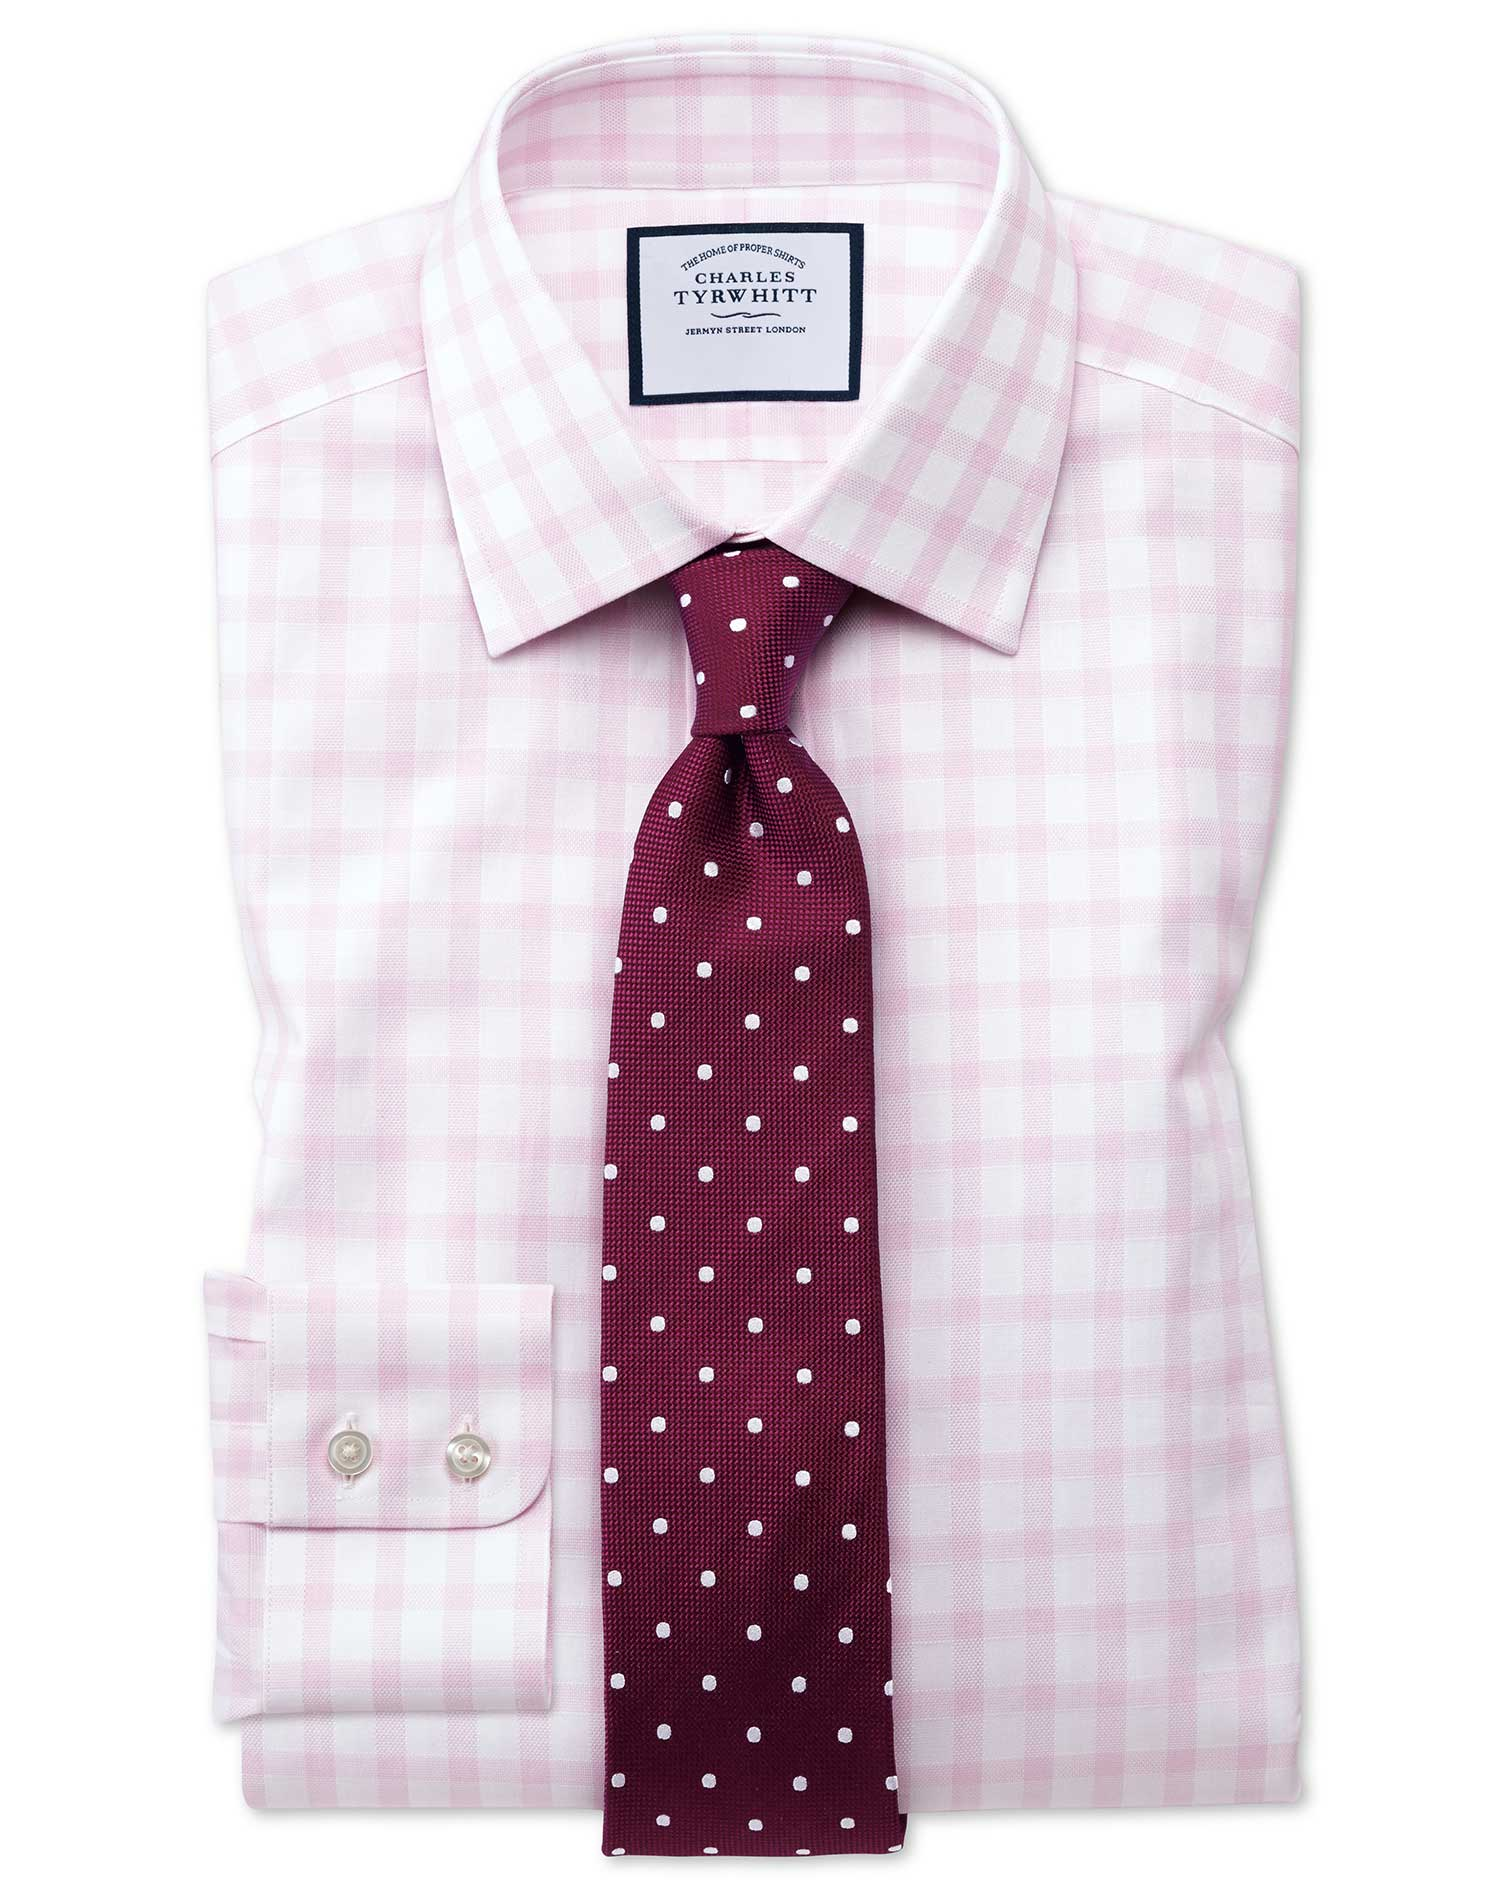 Slim Fit Windowpane Check Pink Cotton Formal Shirt Single Cuff Size 17.5/35 by Charles Tyrwhitt